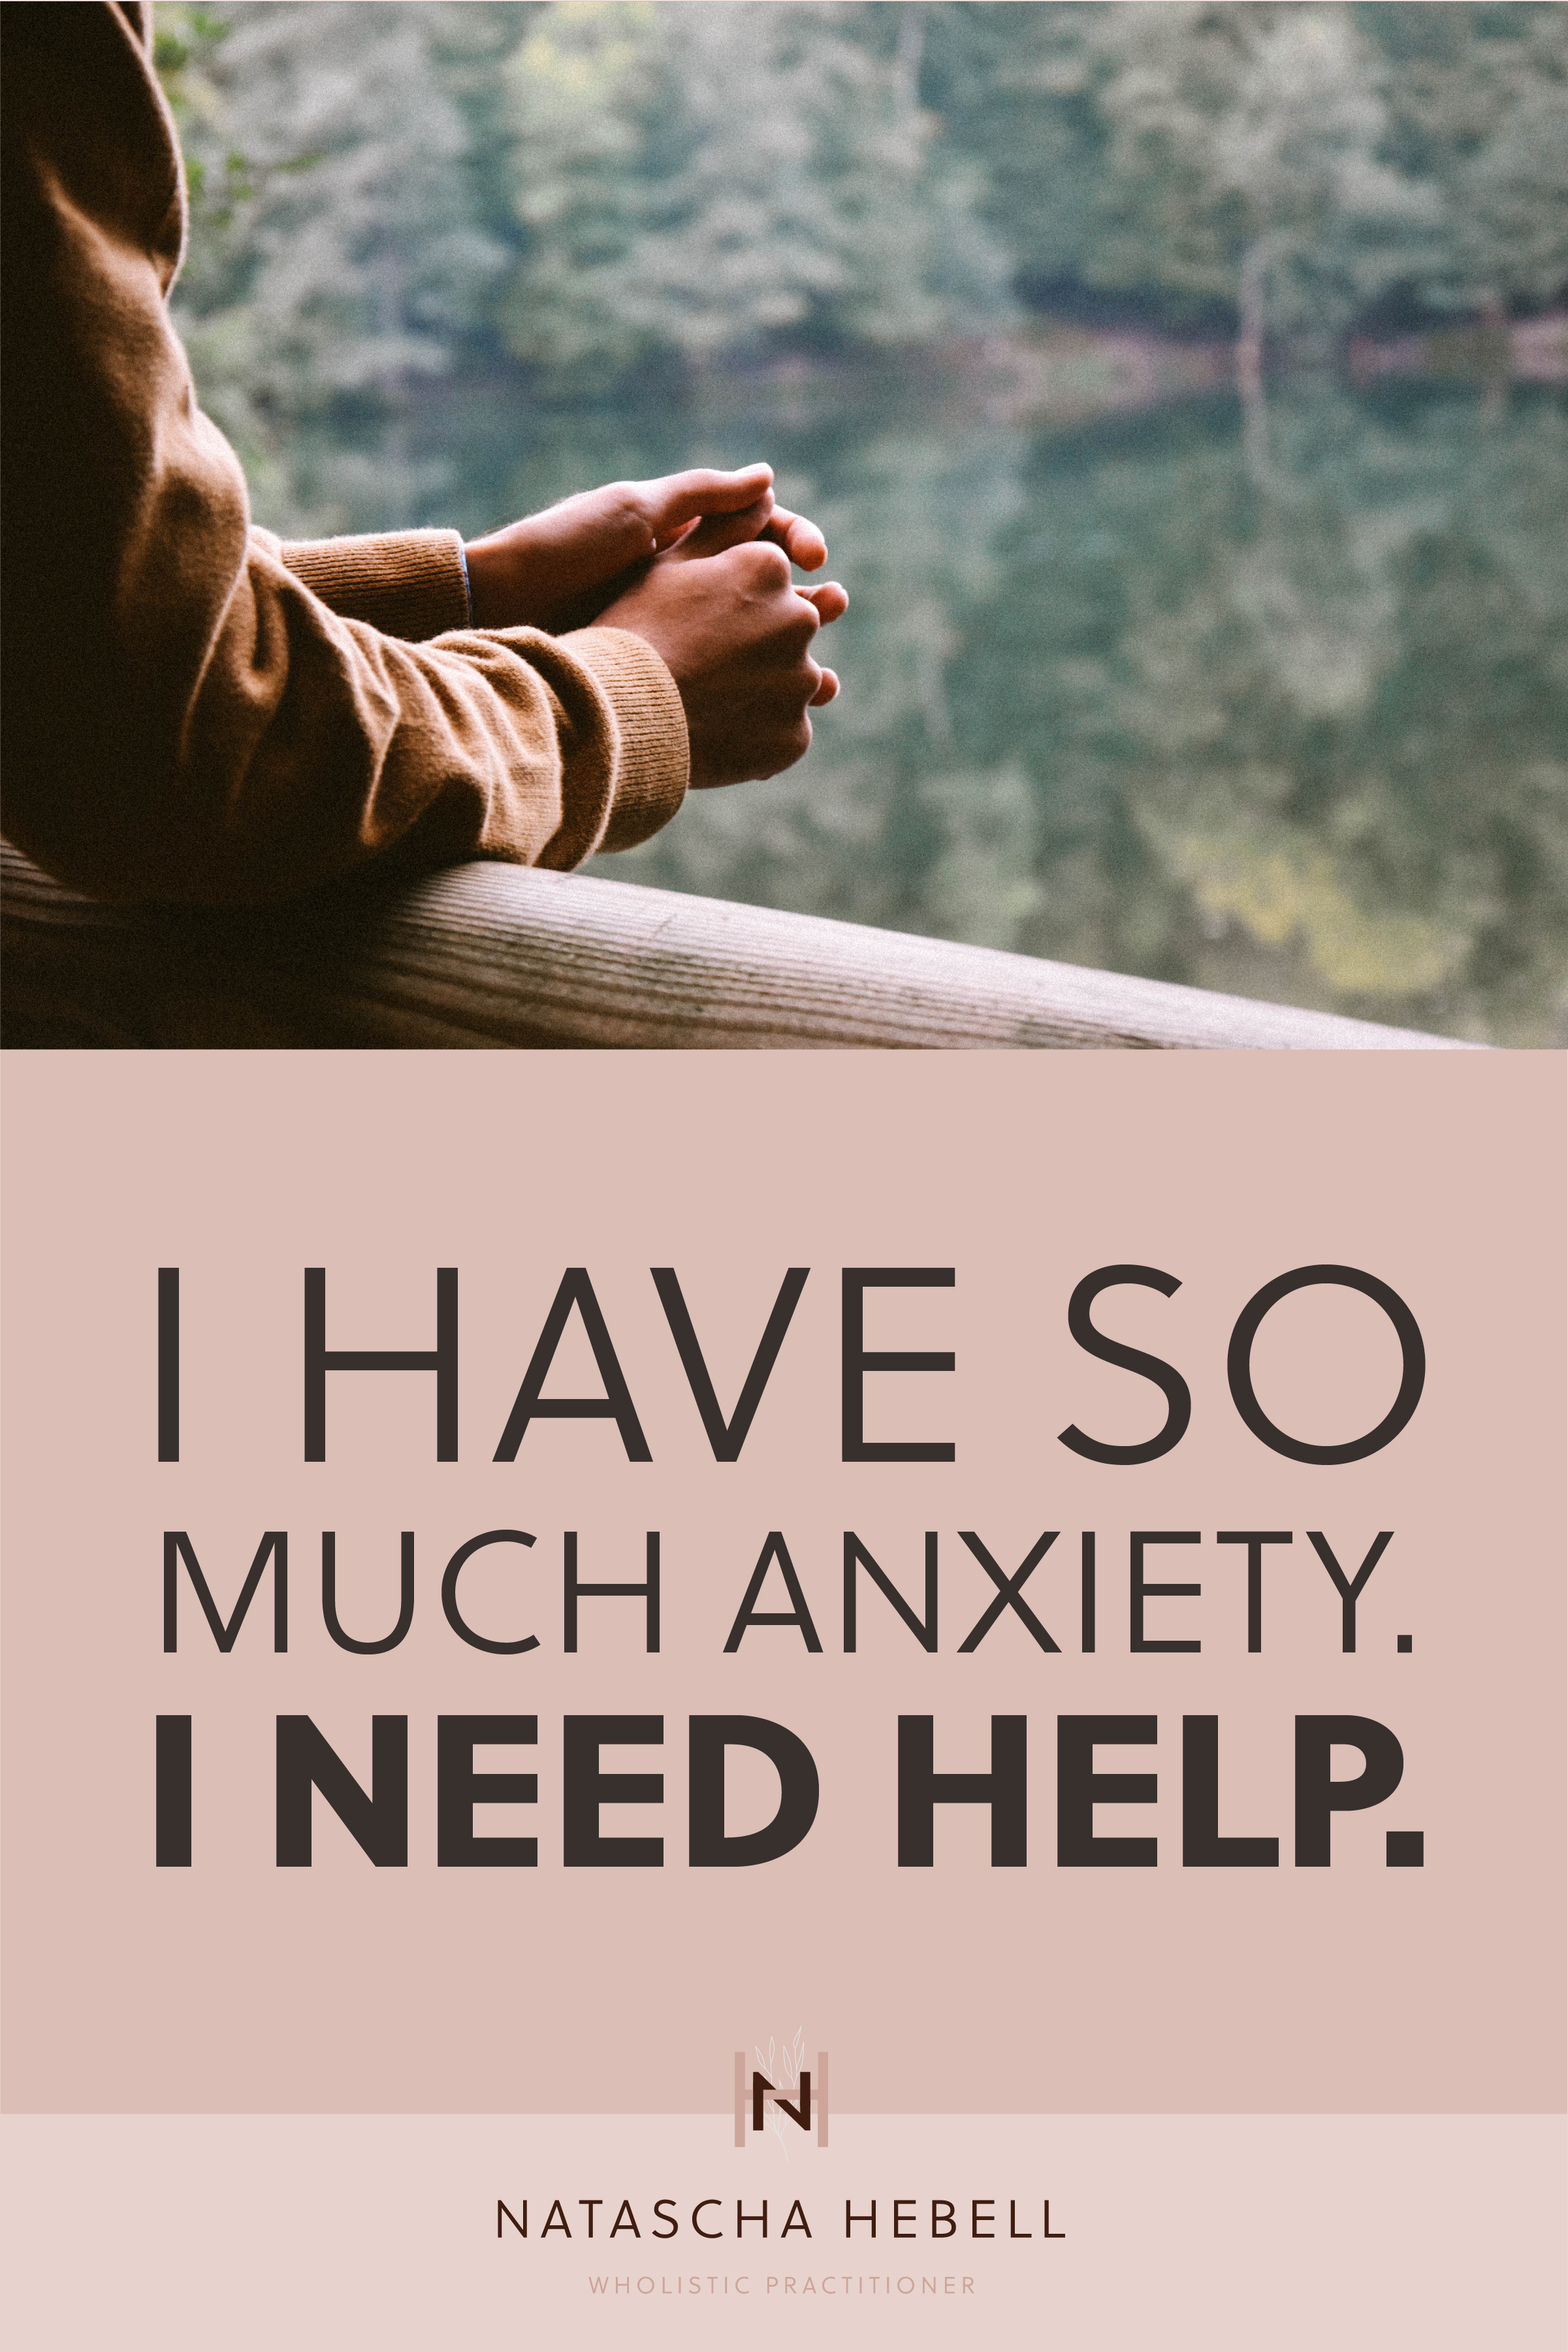 I have so much anxiety. I need help. | Natascha Hebell, Wholistic Practitioner